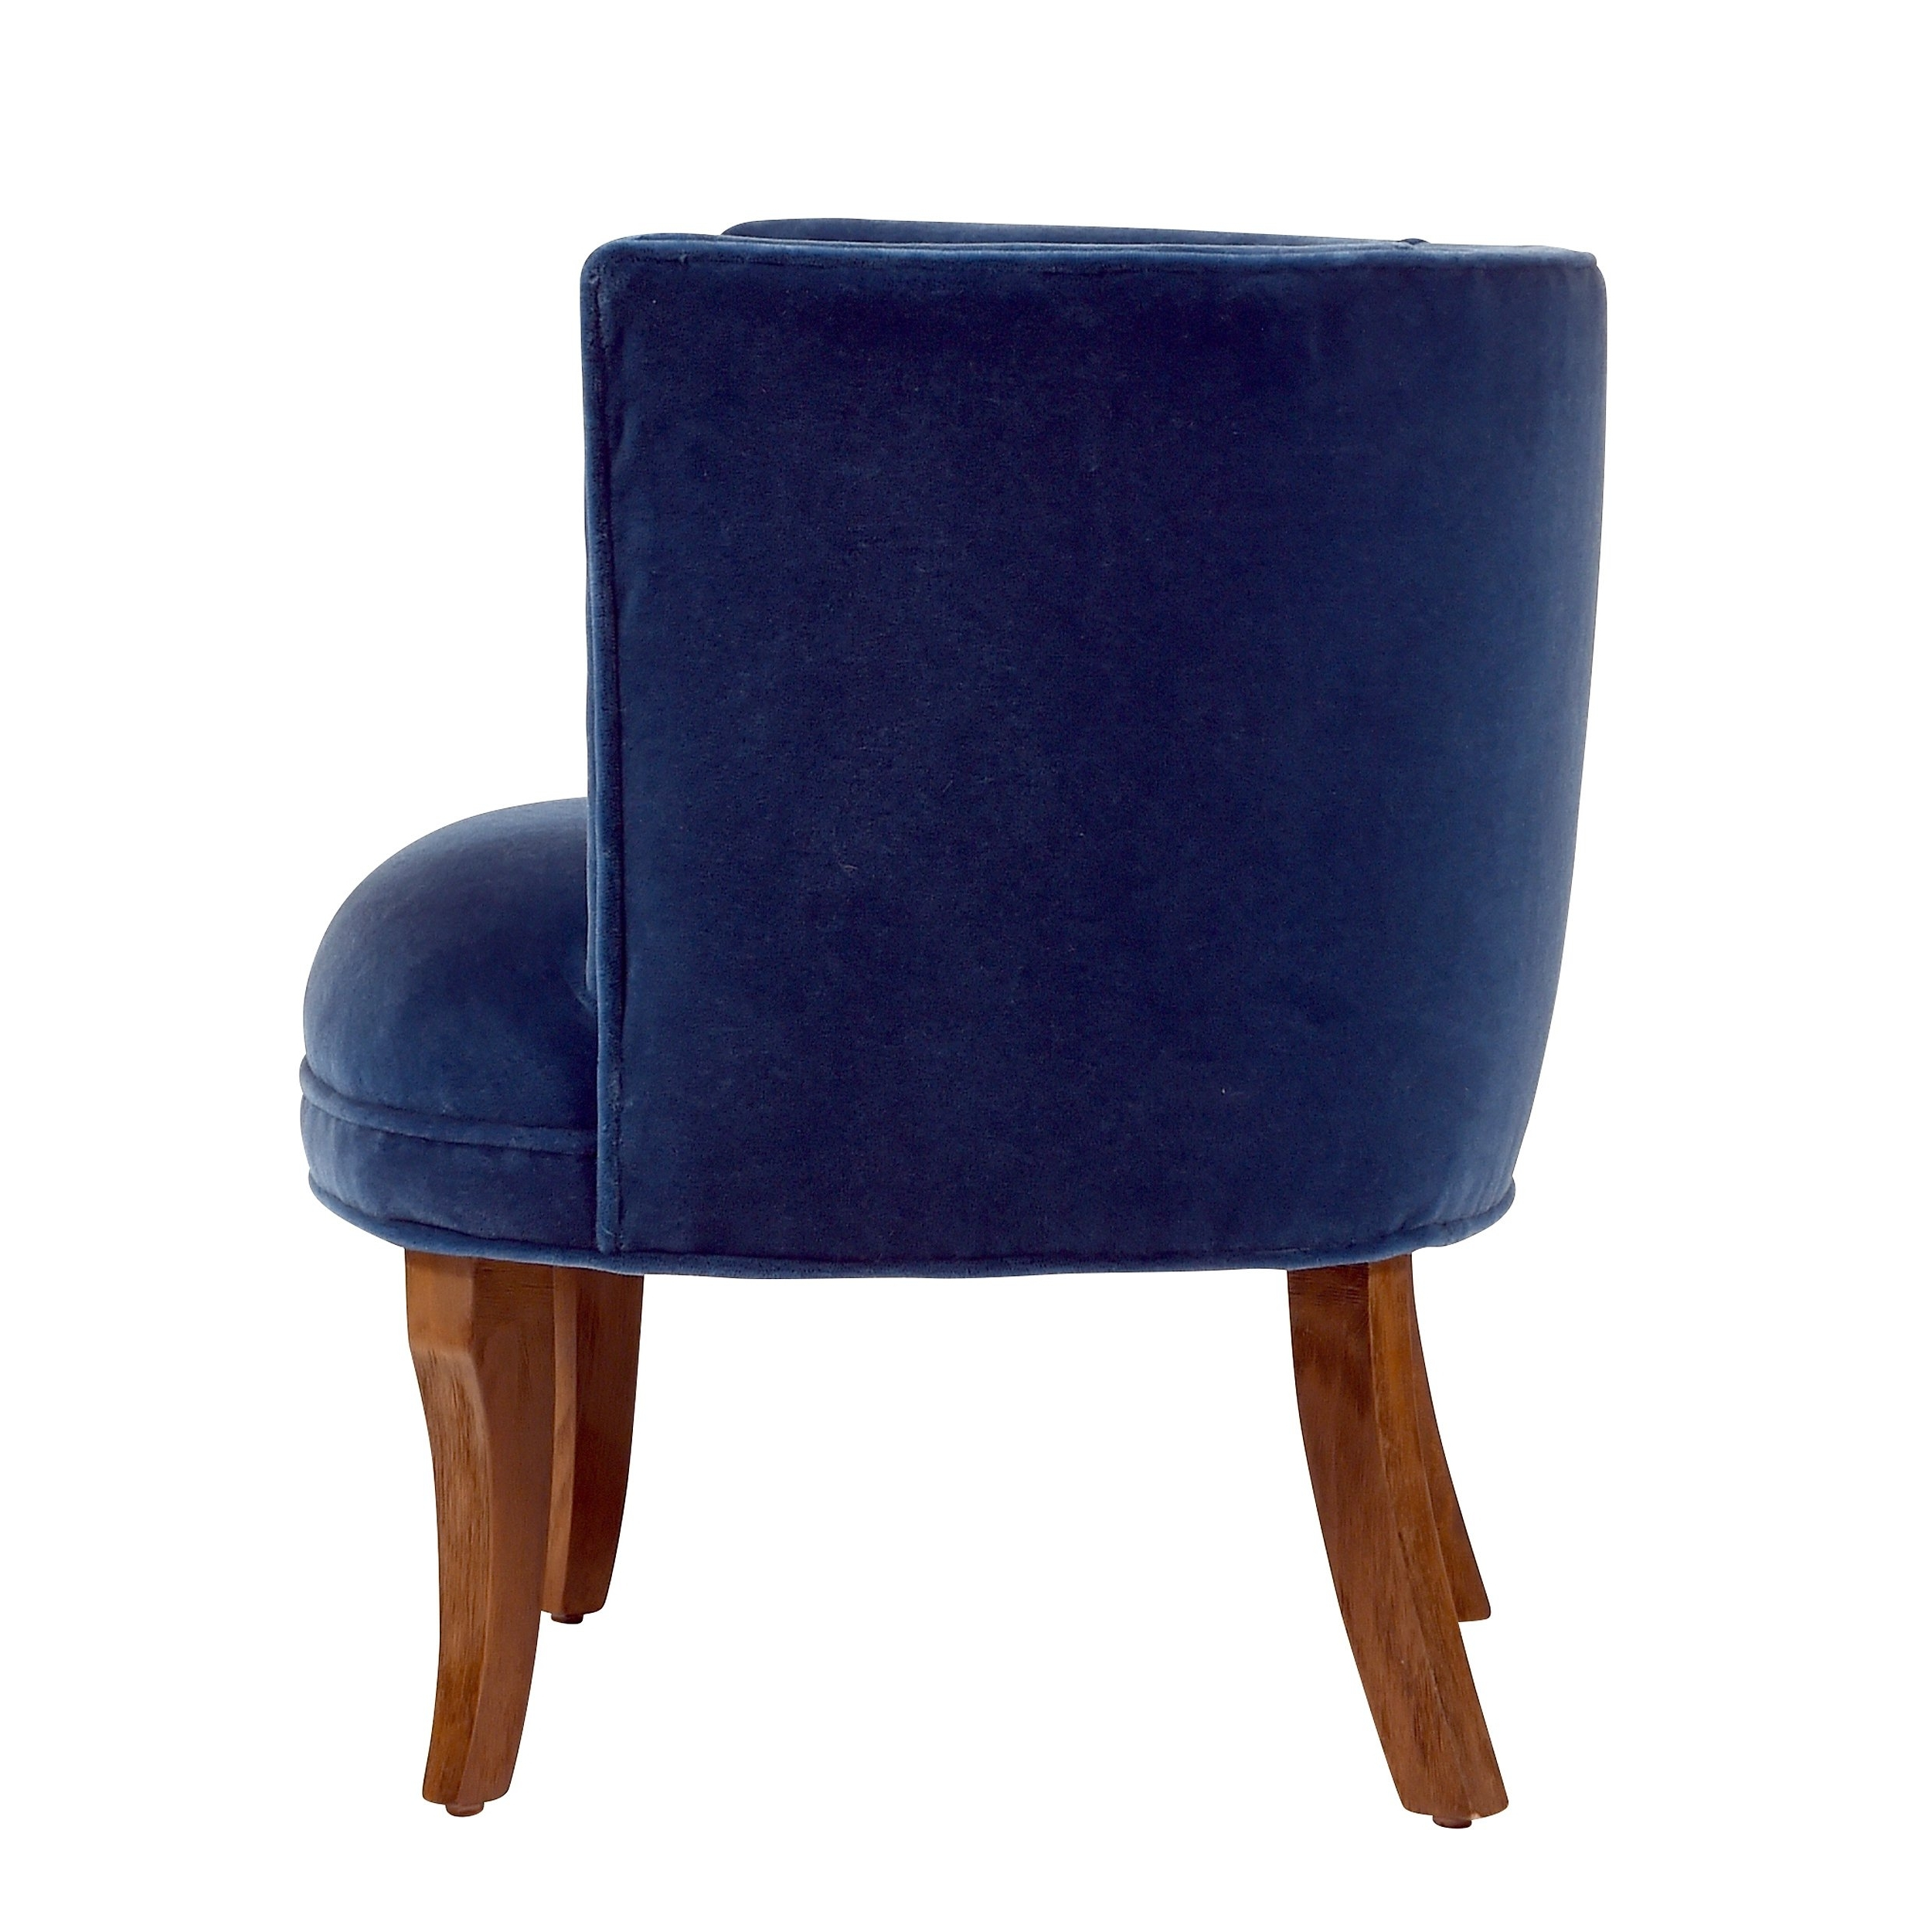 Latest Shop Jaxon Bella Navy Blue Velvet Upholstered Armchair – Free With Jaxon Grey Upholstered Side Chairs (View 13 of 20)